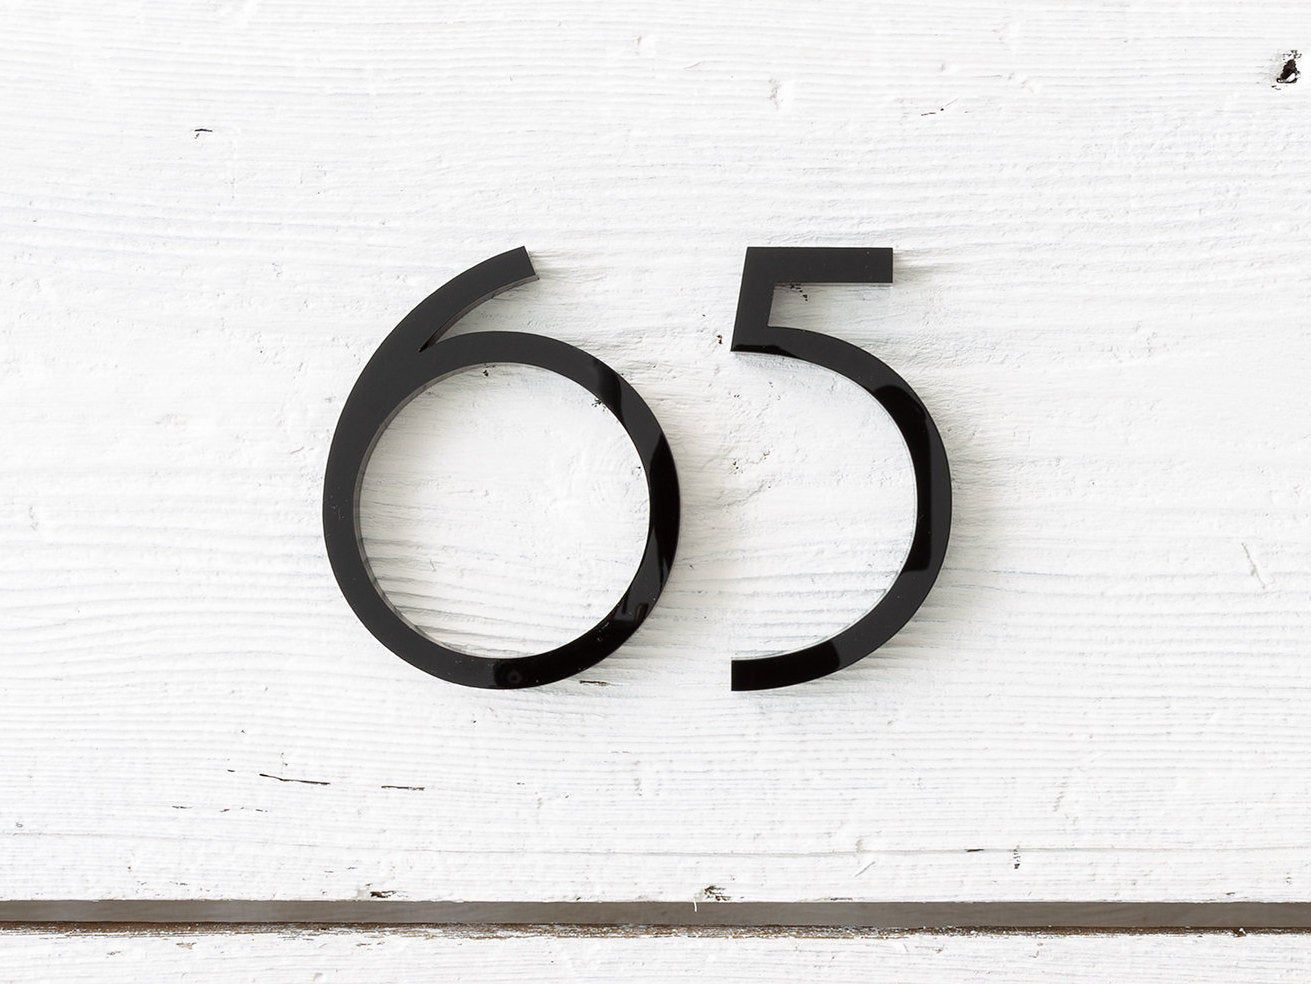 8 Inch House Numbers Modern Farmhouse Apartment Building Home Address Art Deco Door Number 2020